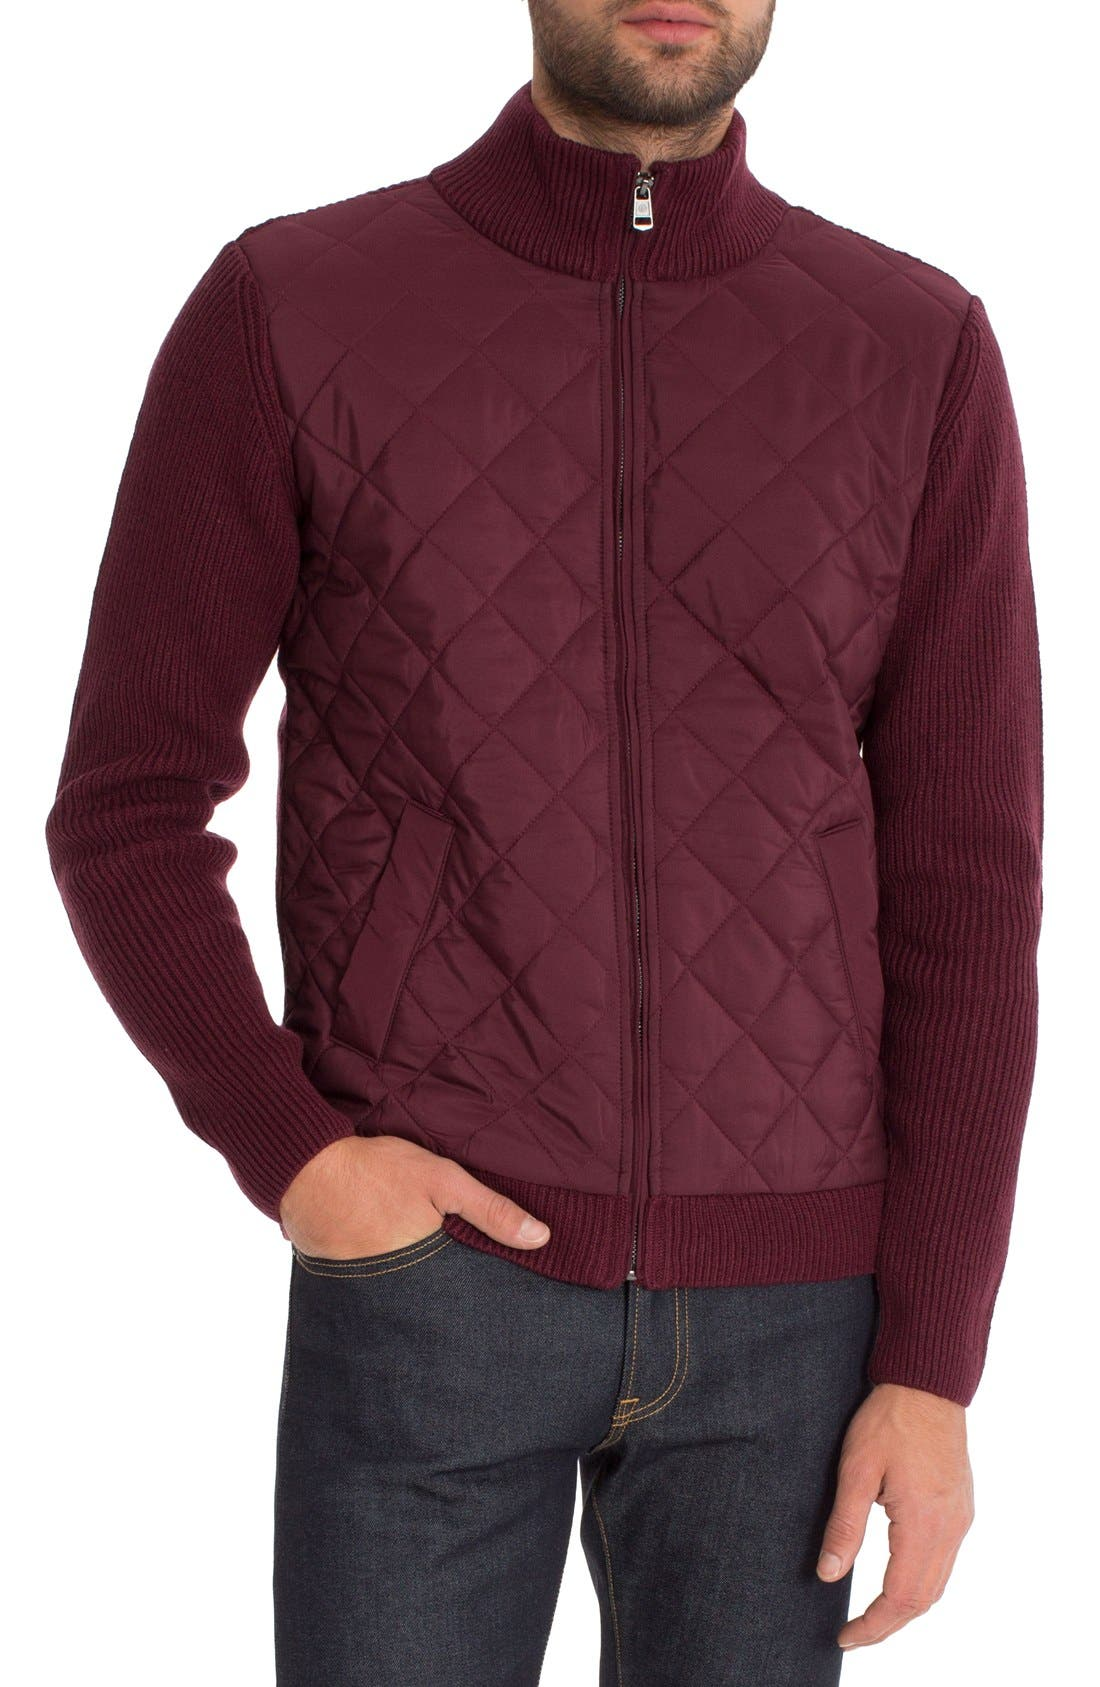 'Gatti' Quilted Panel Lambswool Knit Jacket,                             Main thumbnail 1, color,                             Maroon